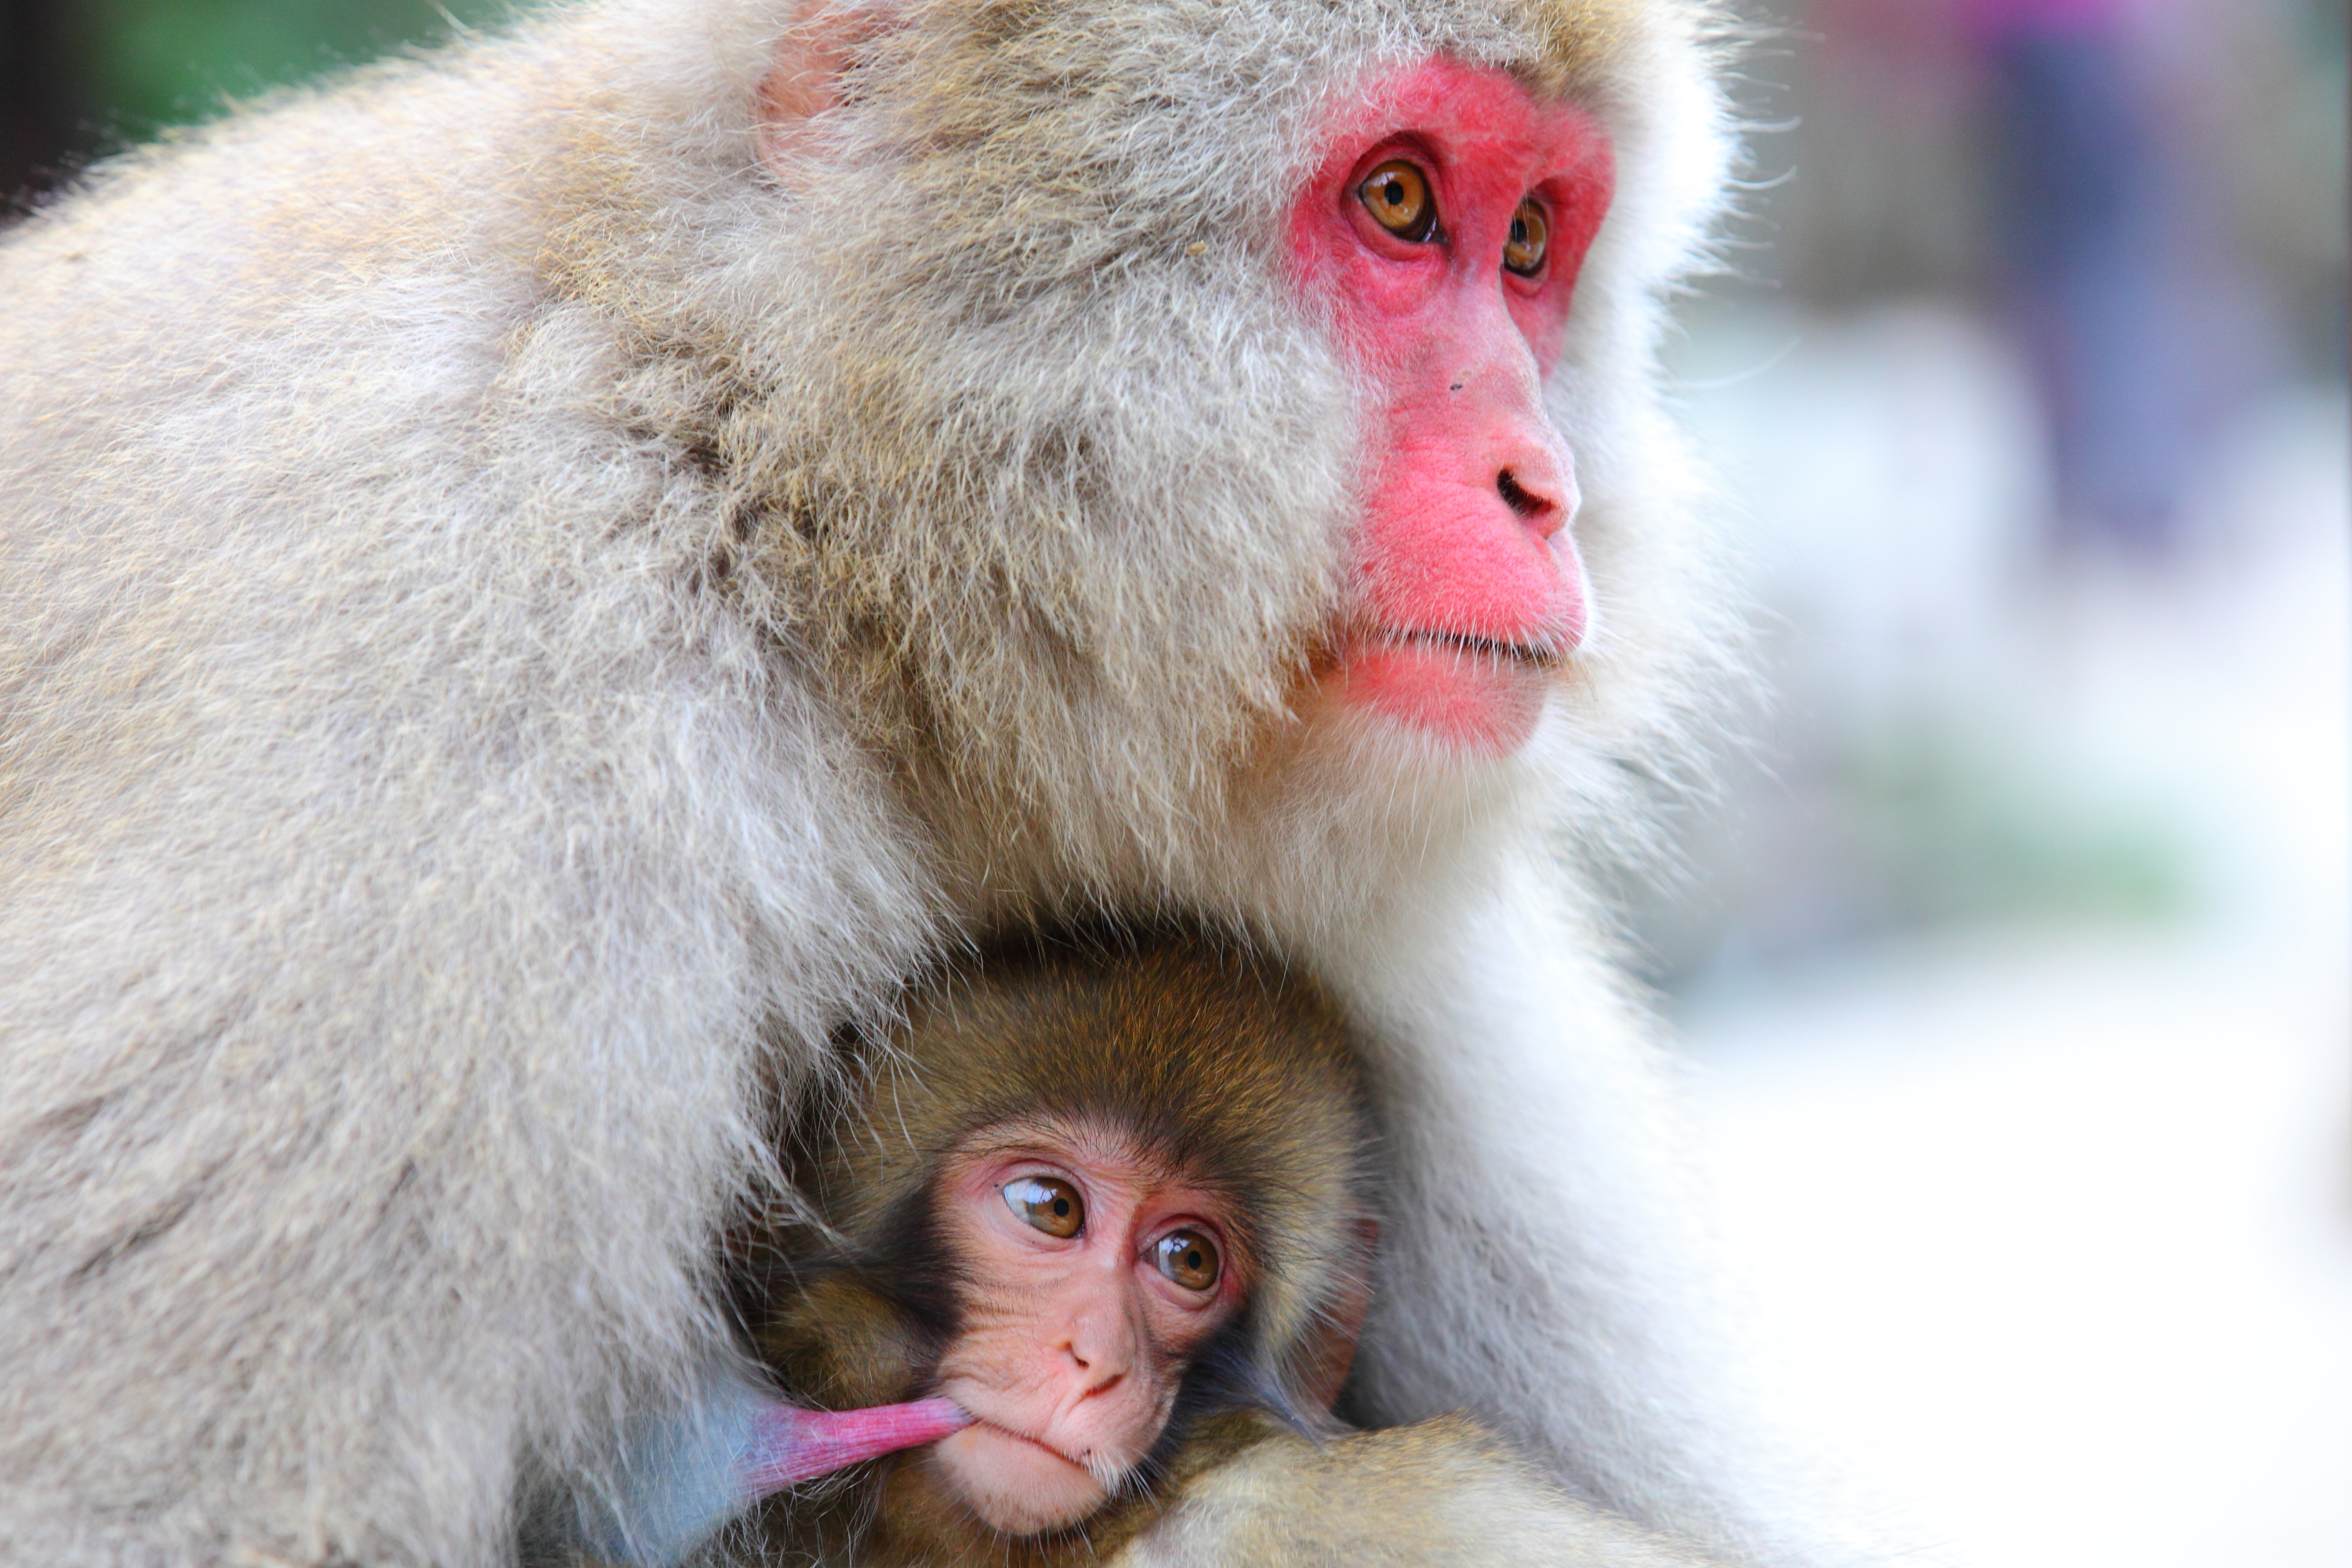 The Snow Monkeys FAQ